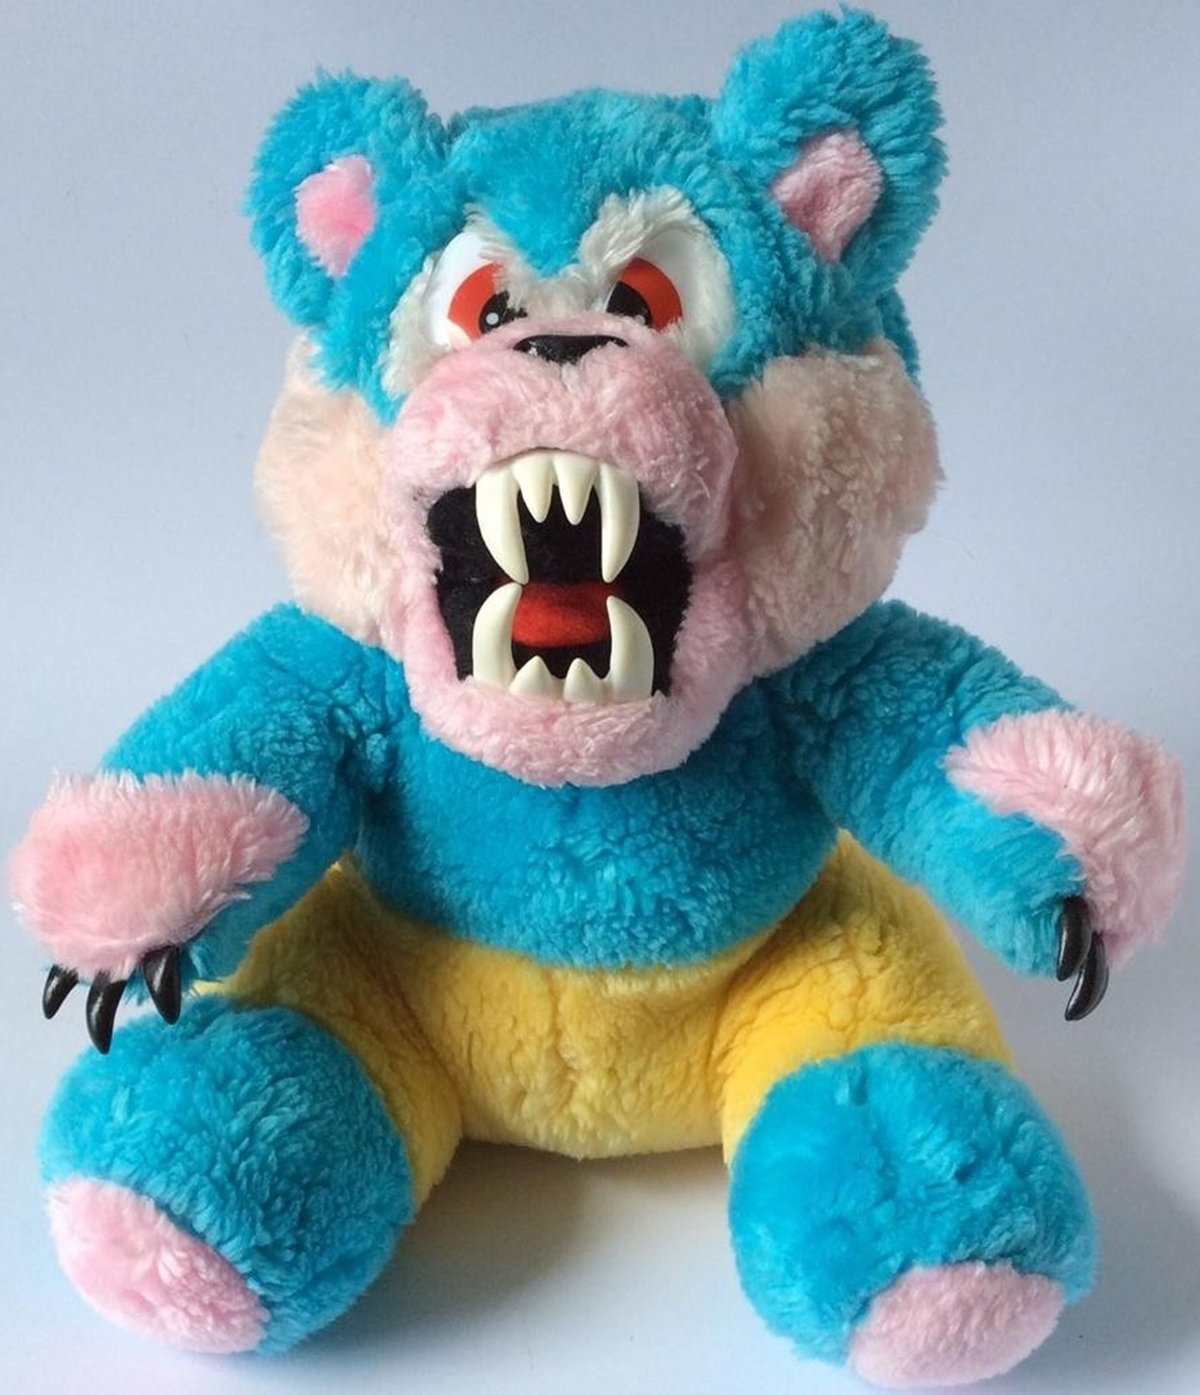 14 13 QUIZ: How Many Of These 15 Cuddly Toys Did YOU Own As A Child?